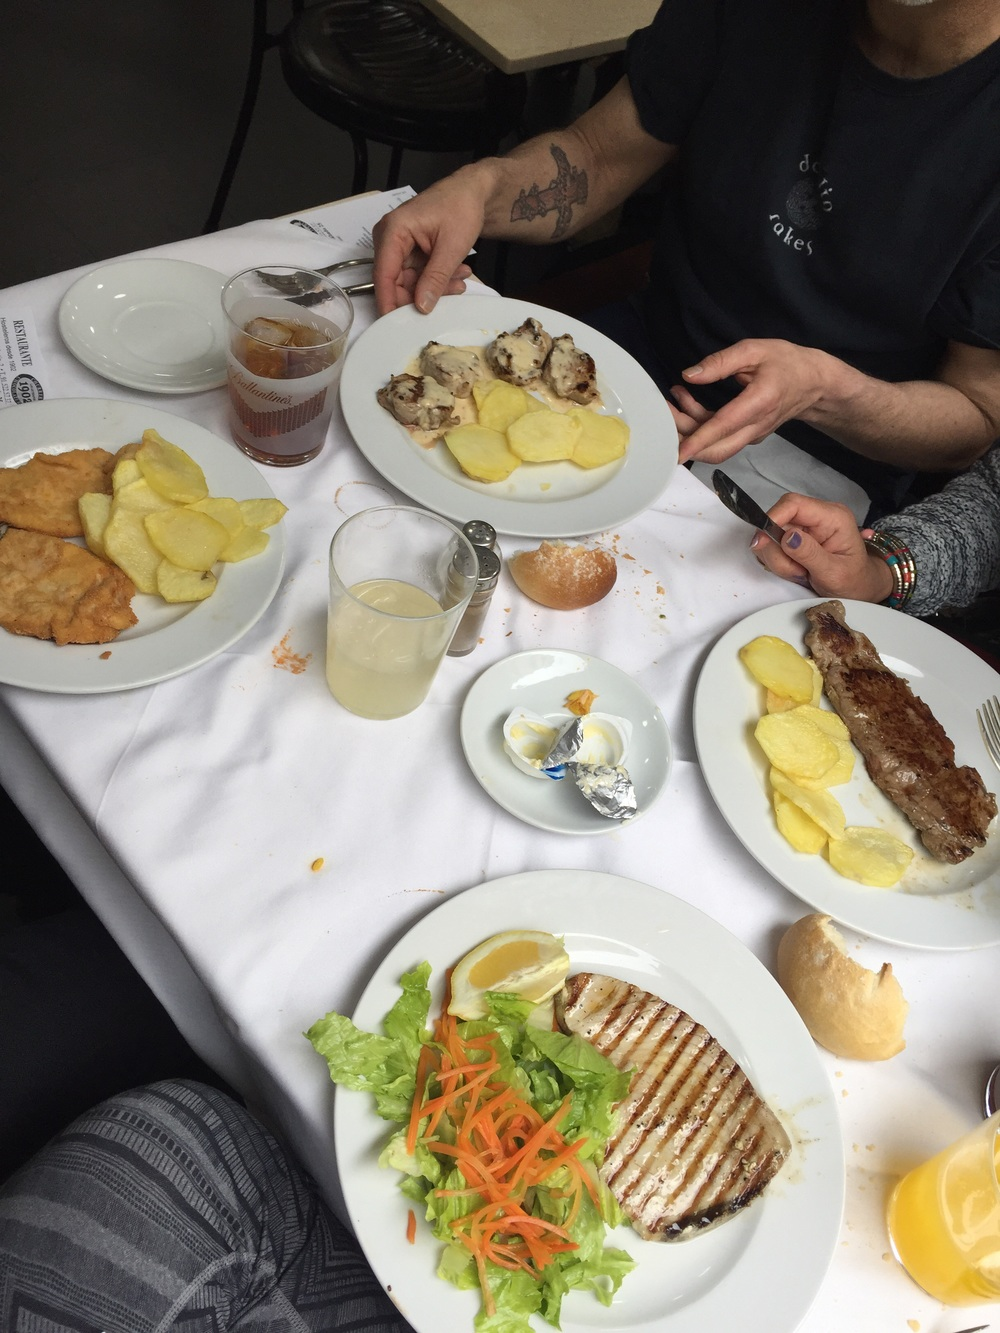 Simple yet delicious food. Starting from the bottom and going clockwise: grilled tuna steak with salad, pan-fried chicken cutlet with potatoes, pan-fried pork cutlets with a pimiento bernaise sauce with potatoes, steak with potatoes.